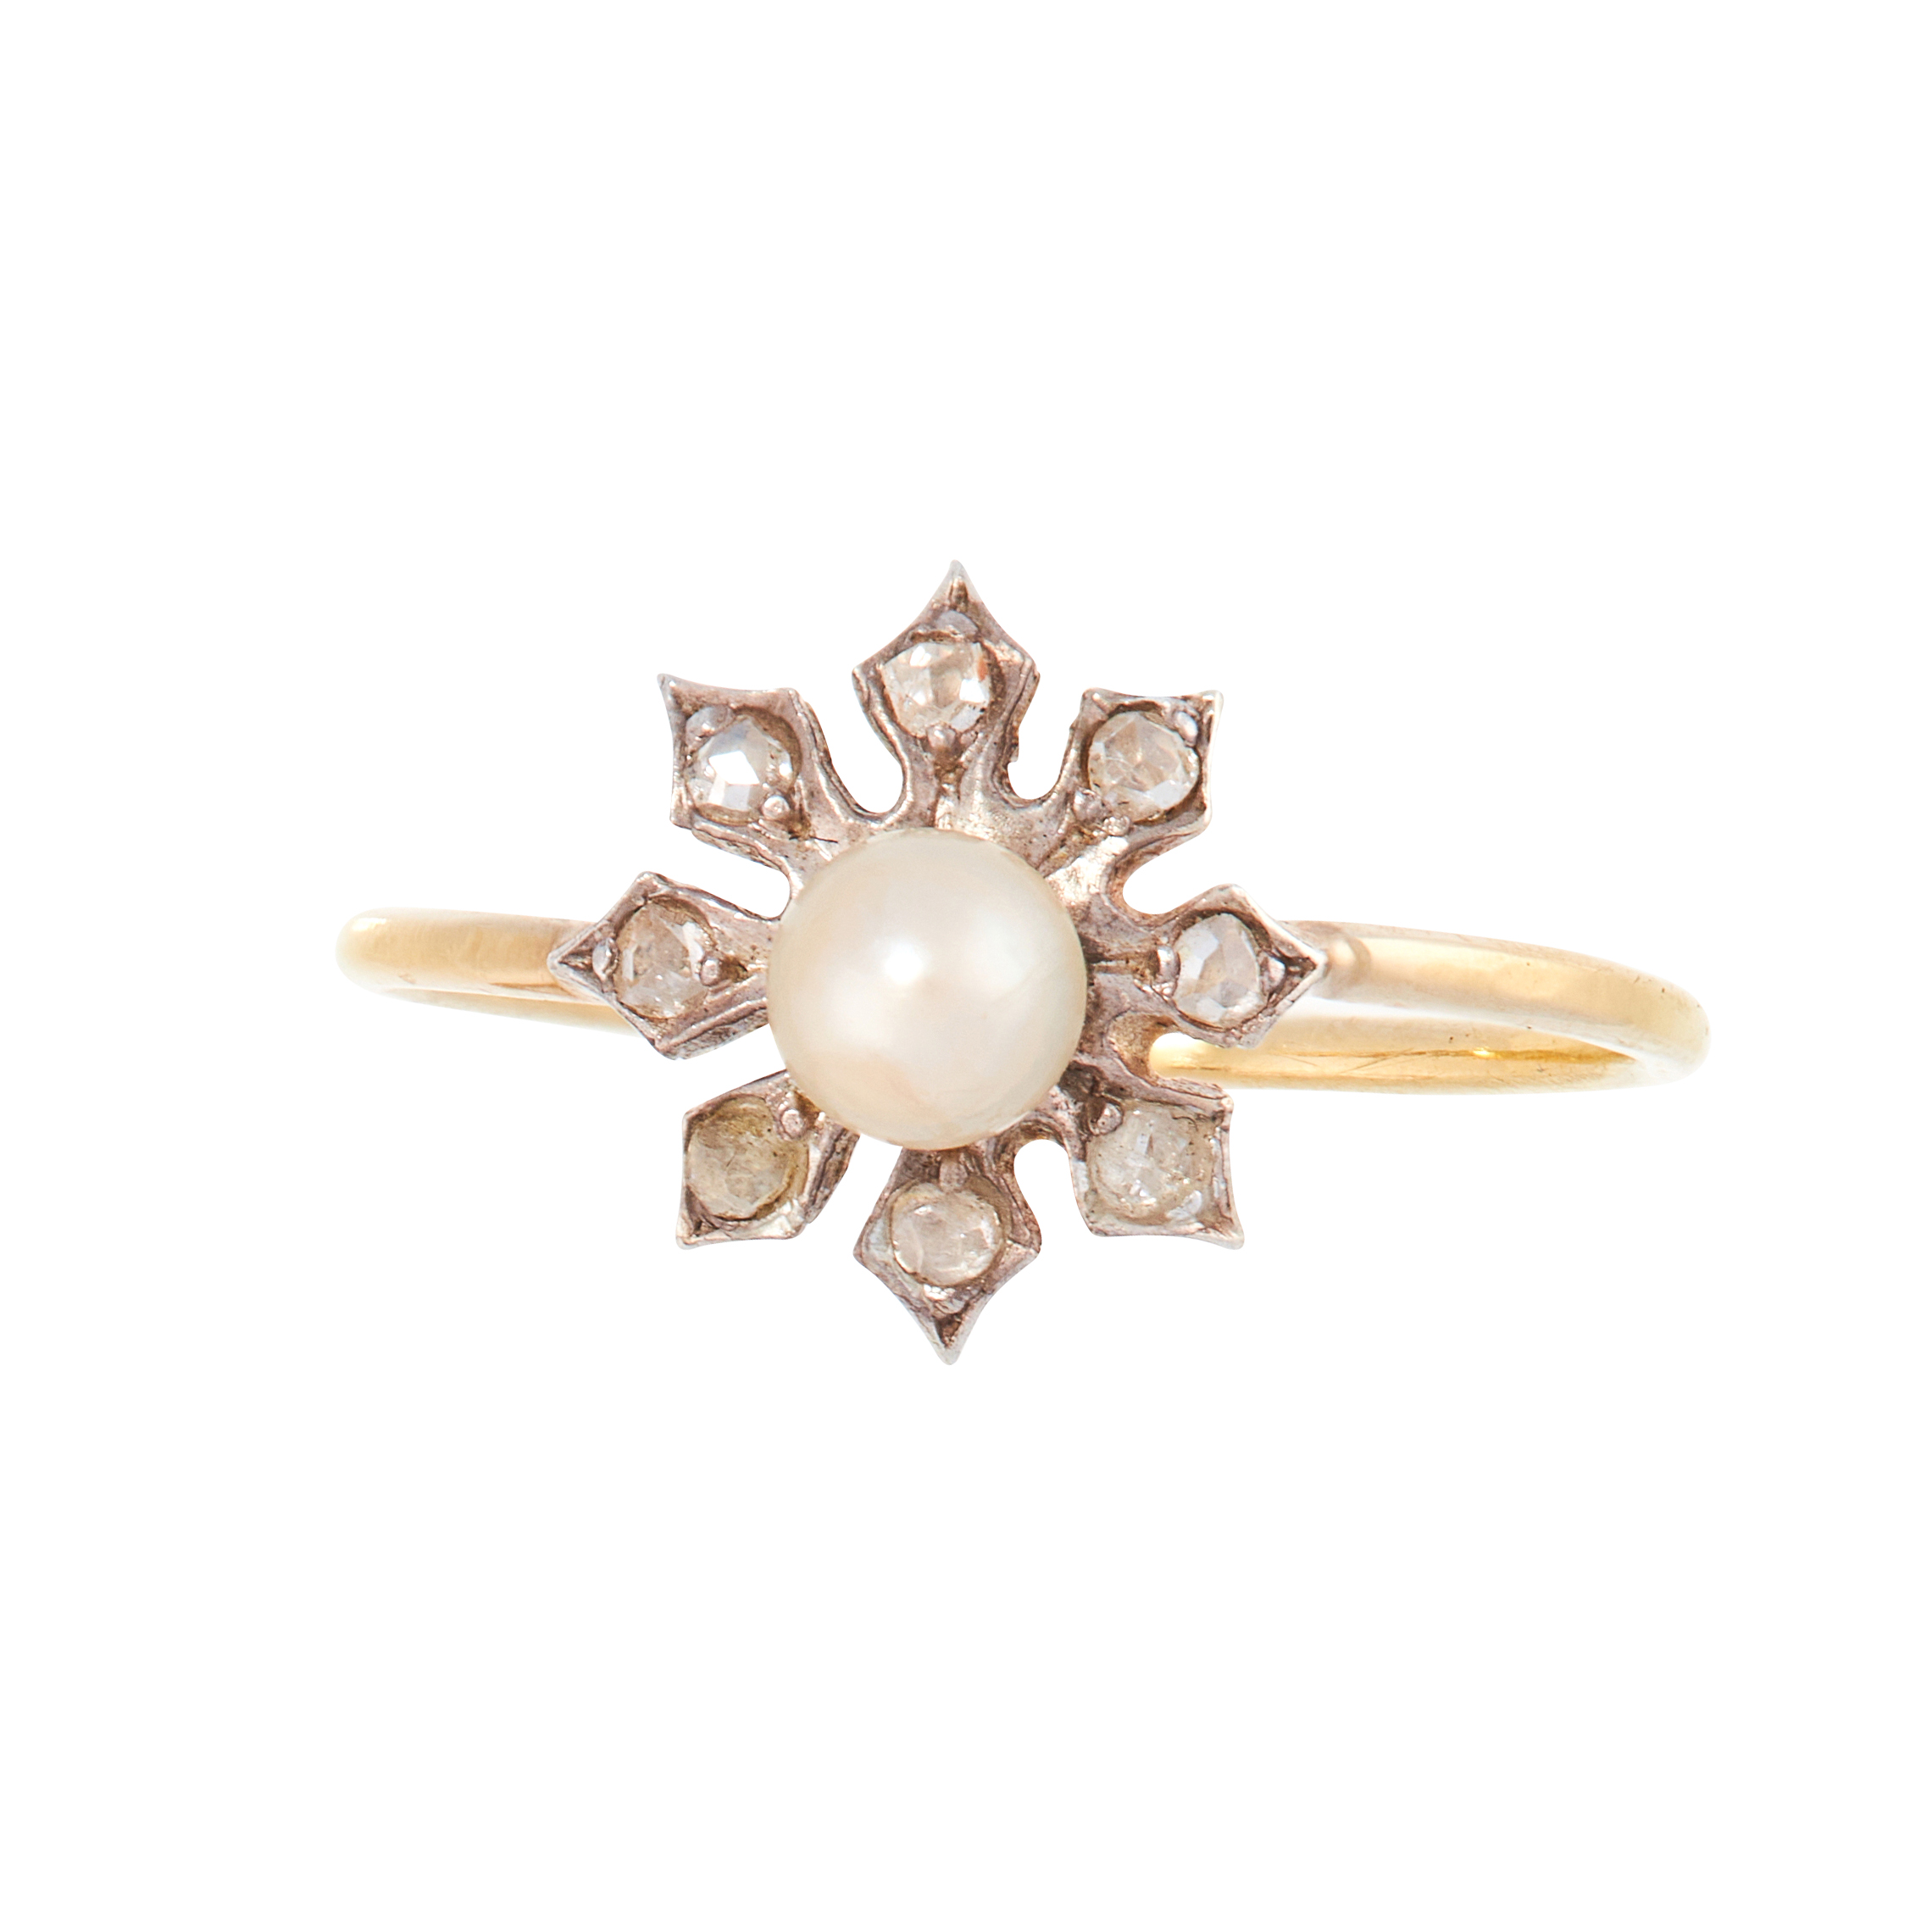 AN ANTIQUE PEARL AND DIAMOND DRESS RING in 18ct yellow gold and silver, set with a pearl of 4.4mm